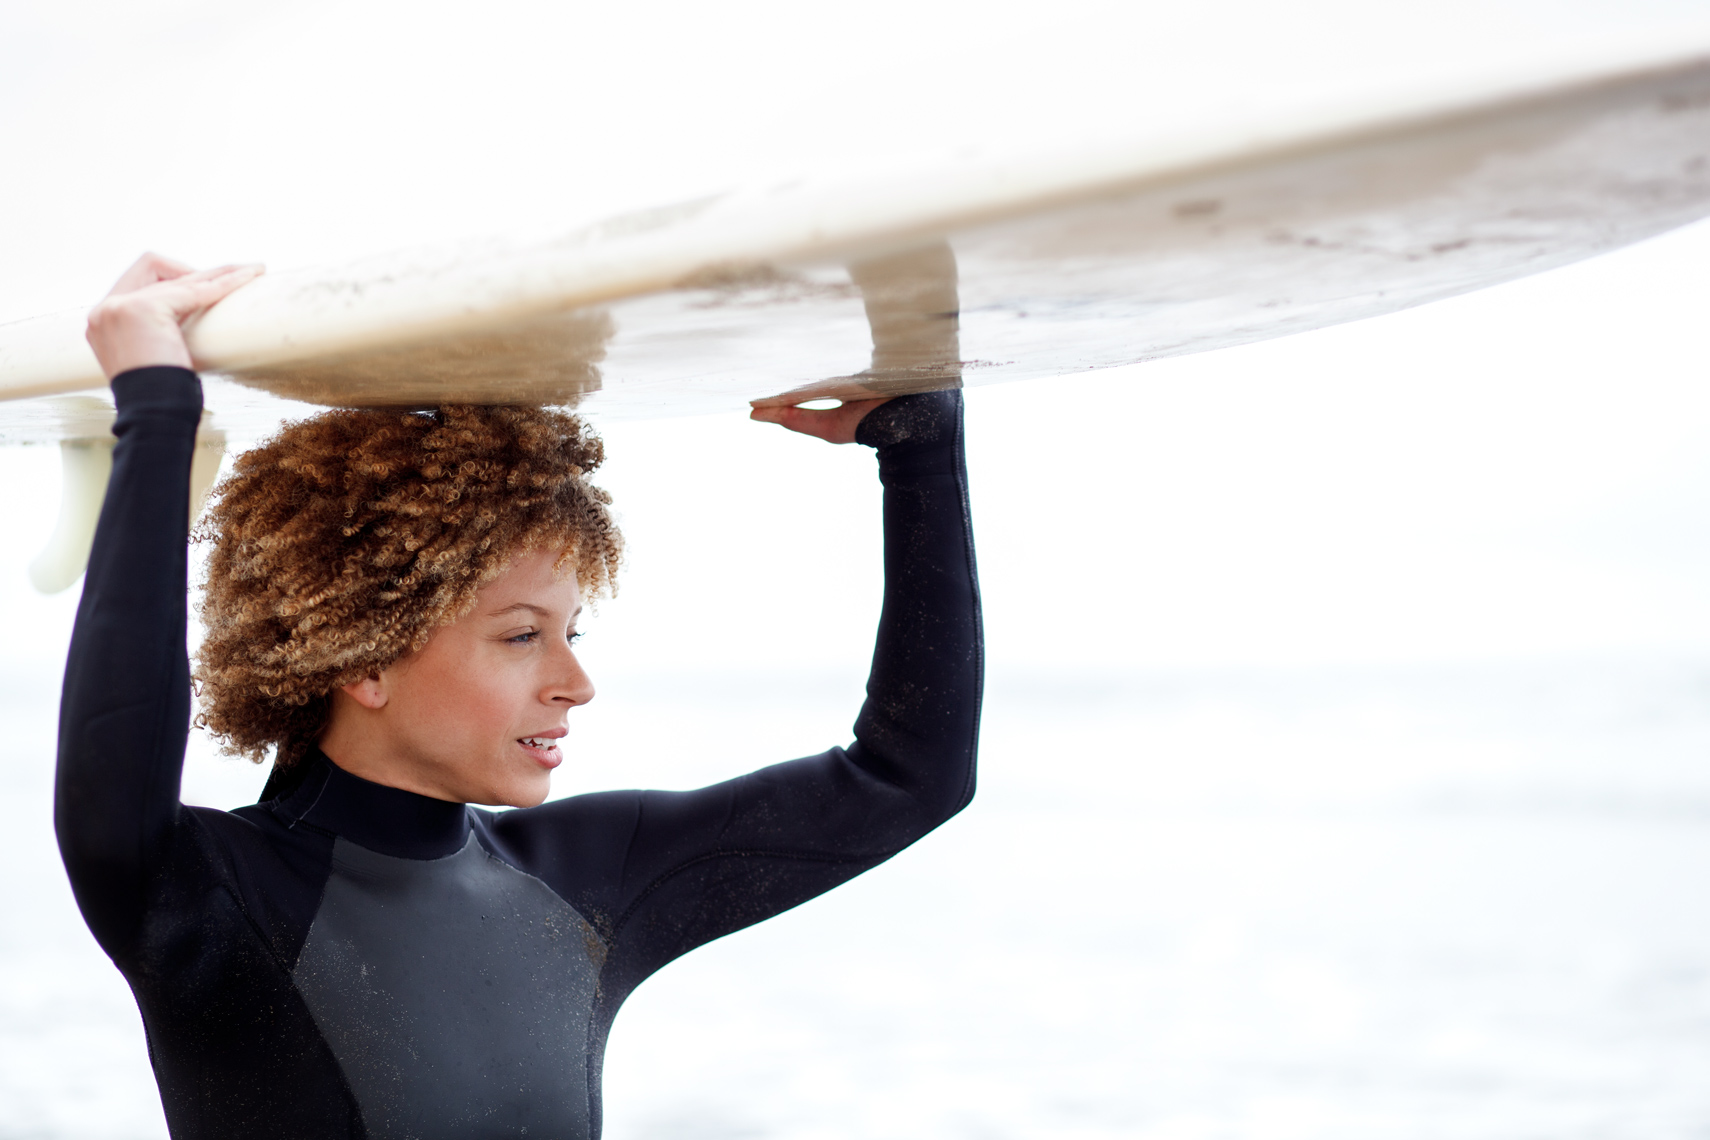 lifestyle photographer, advertising photographer, girl surfer on the beach, surfboard, african american, woman in wetsuit, female